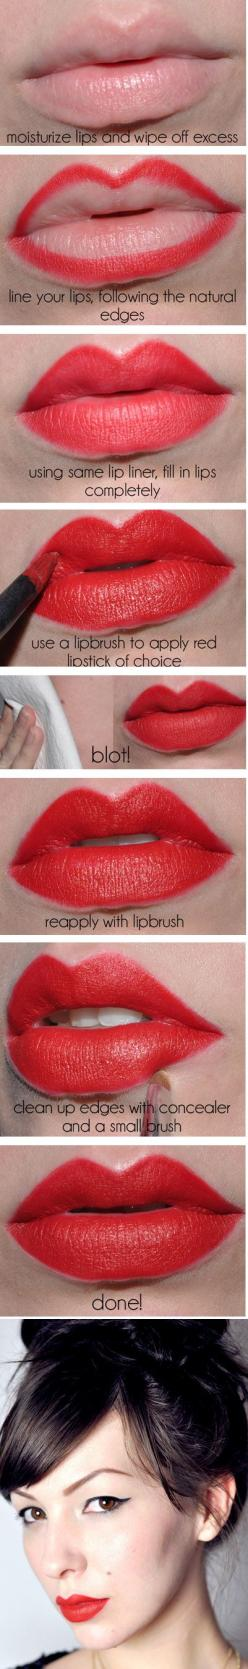 Vintage-Inspired Red Lips | 22 Beauty Tutorials For Dramatic Holiday Looks: Beauty Tutorials, Beauty Tips, Lip Tutorial, Makeup Tips, Makeup Ideas, Perfect Red Lips, Red Lipstick, Vintage Inspired, Bold Lips